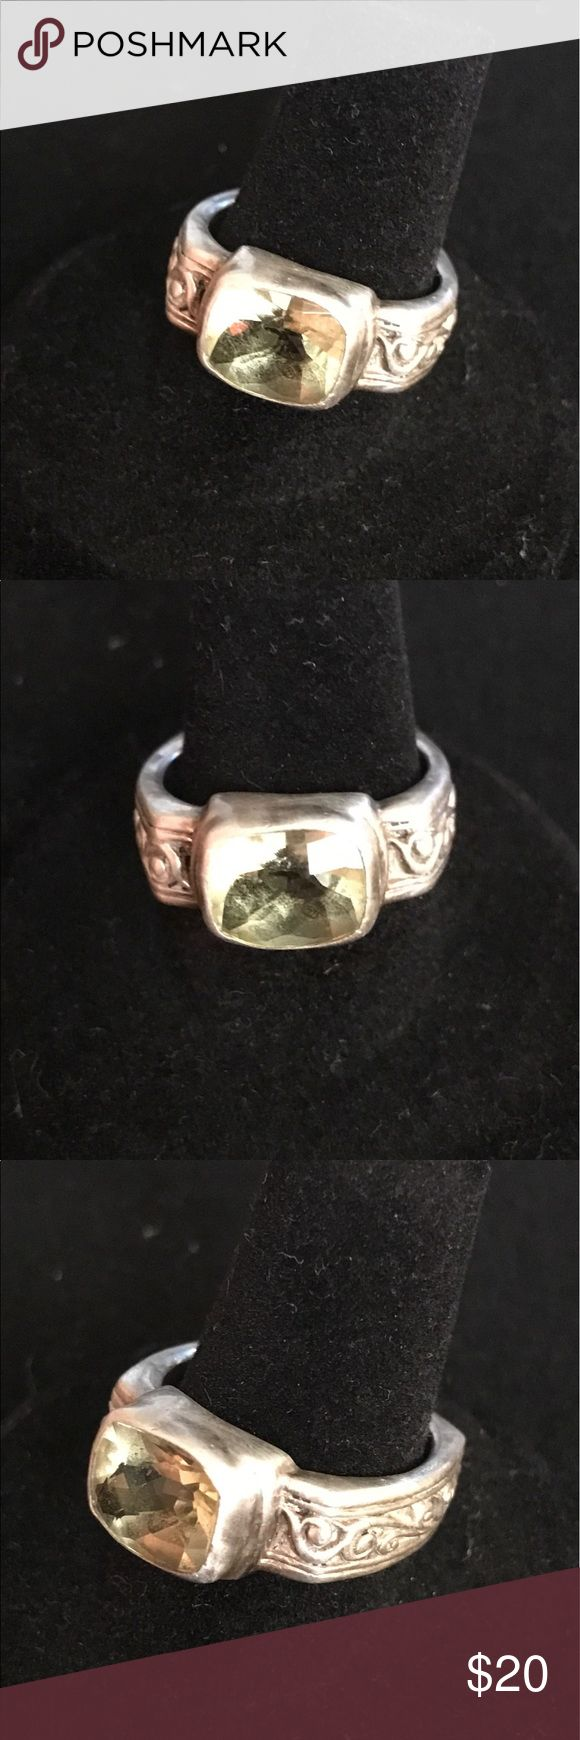 Sterling silver peridot ring Beautiful solid sterling silver ring with large peridot stone. Jewelry Brooches